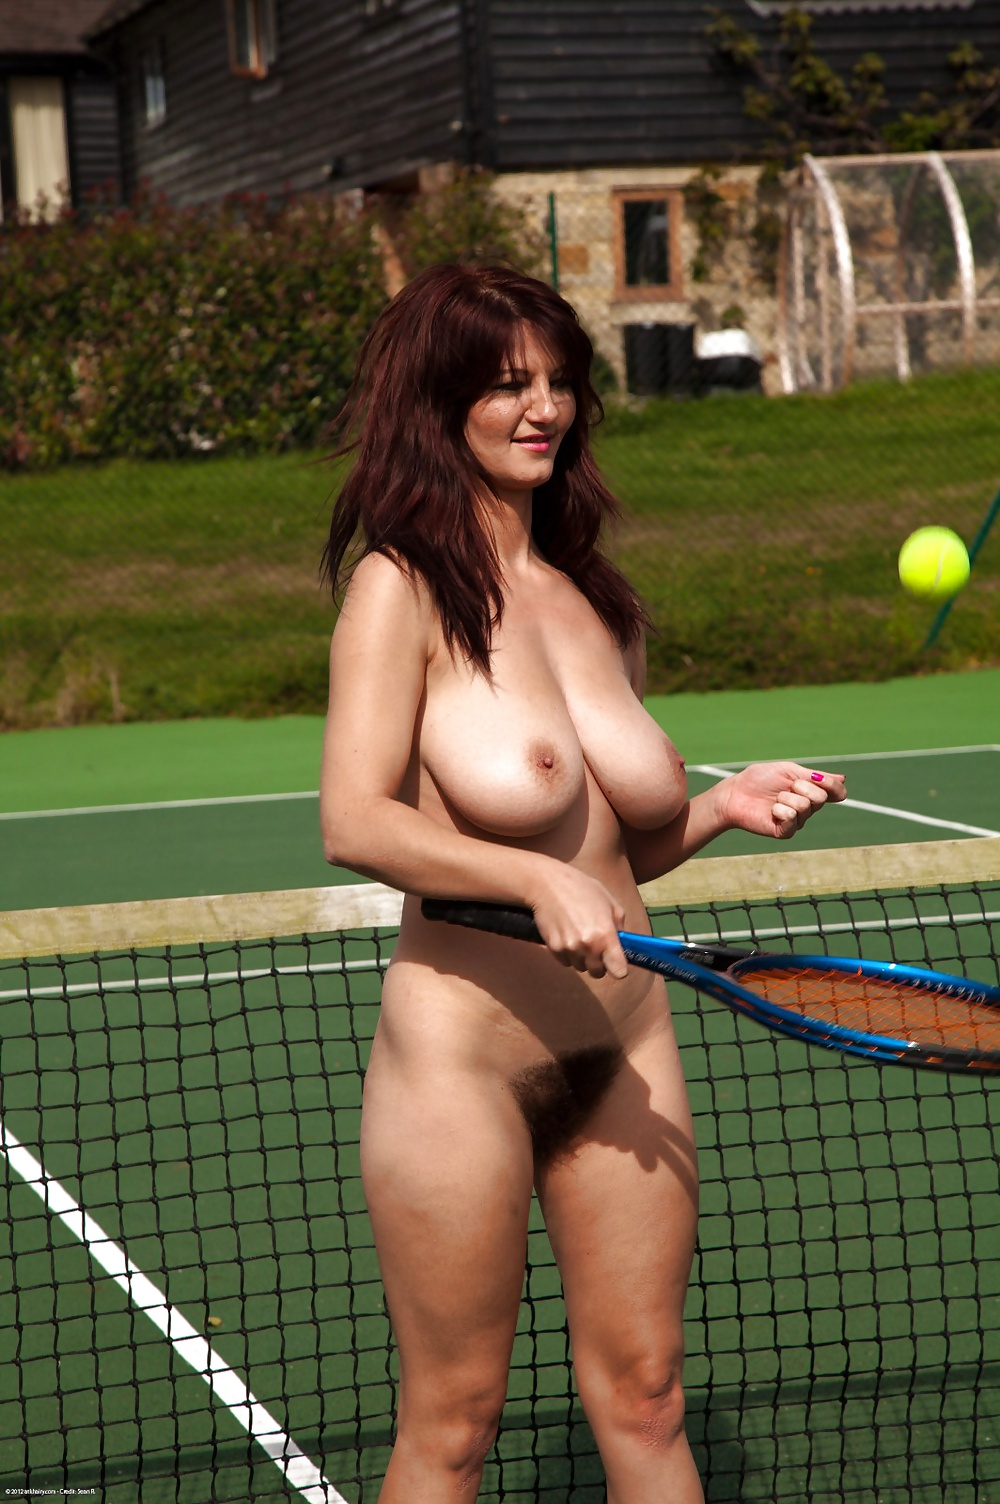 Nude famous female tennis player, british girl sex